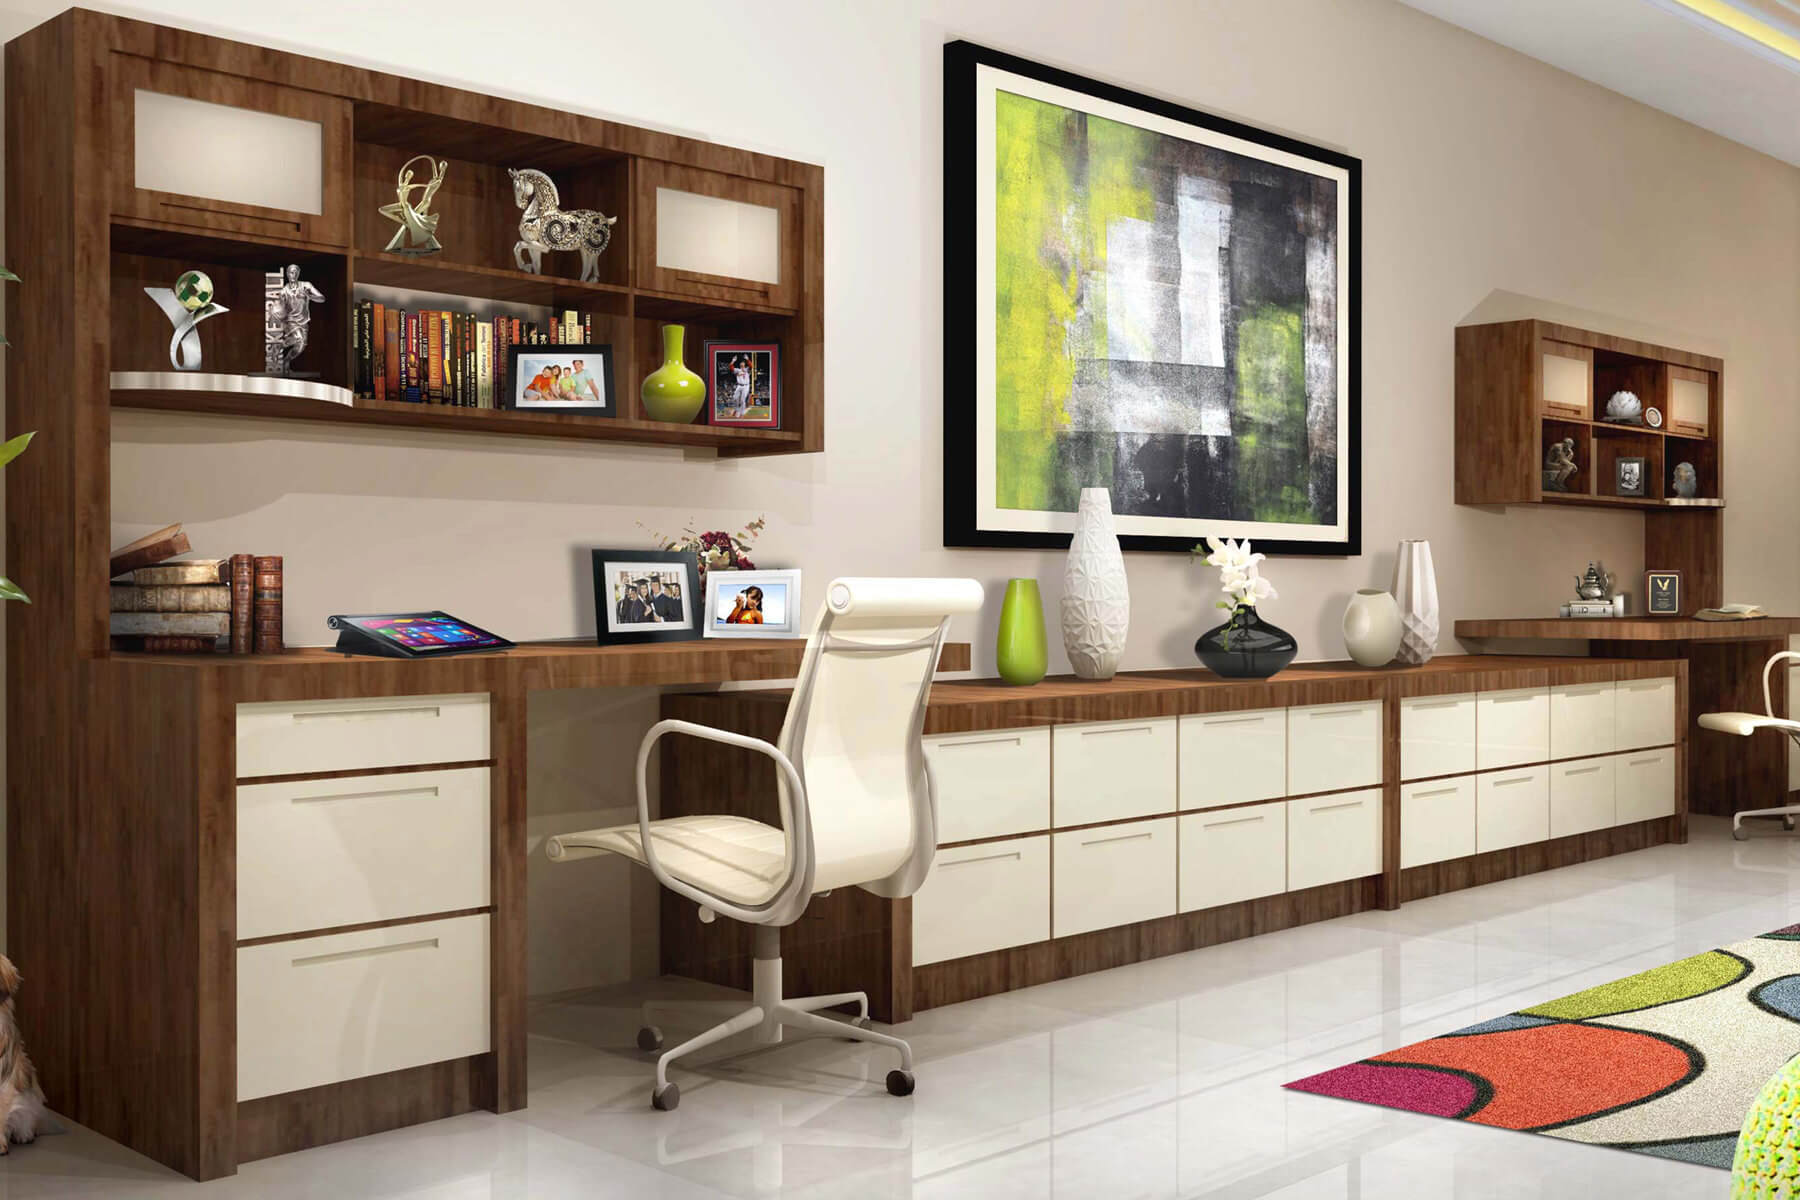 26 Home Office Designs Desks Amp Shelving By Closet Factory